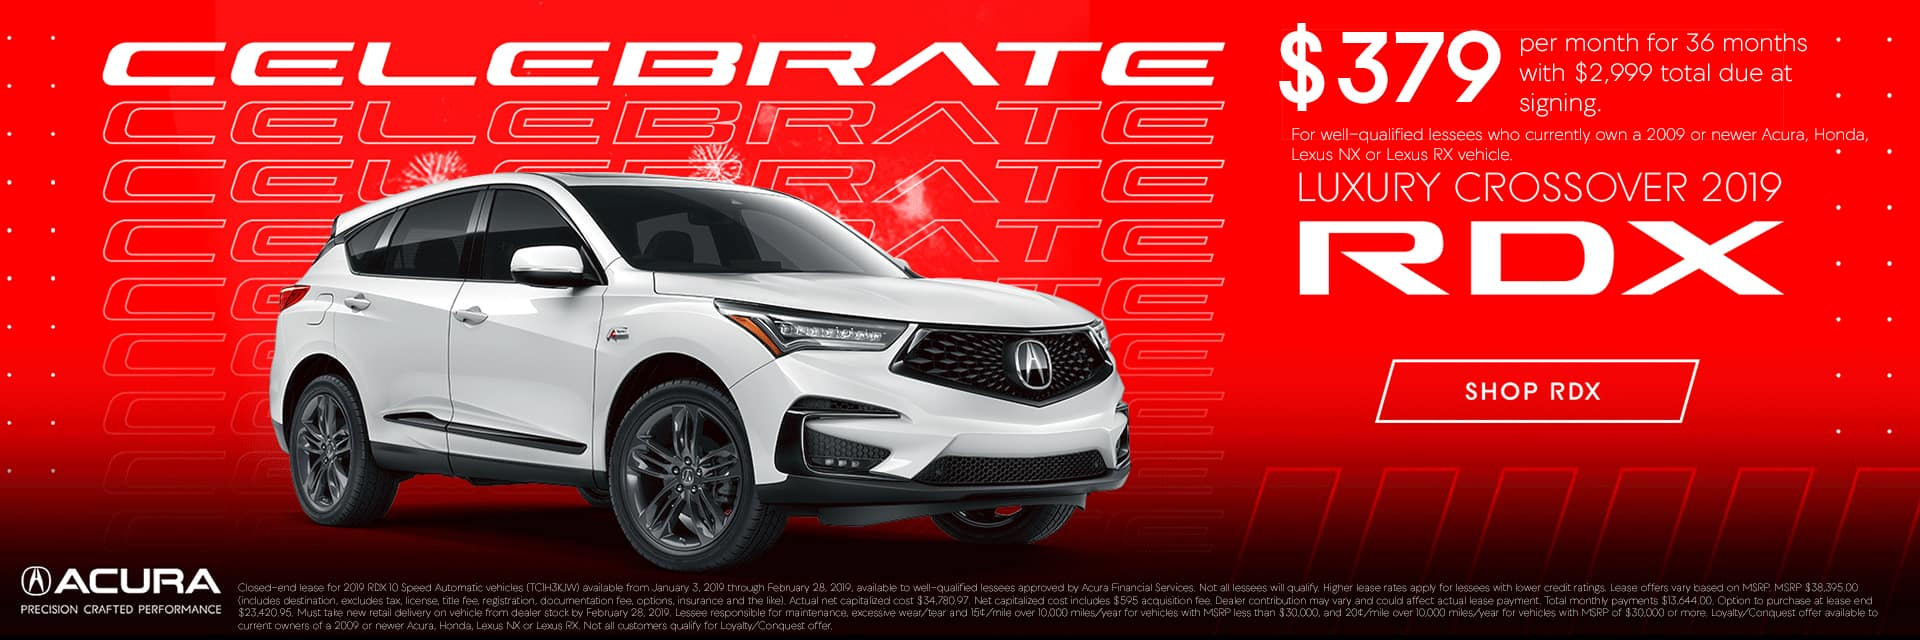 2019 Acura RDX for $379 Conquest Offer